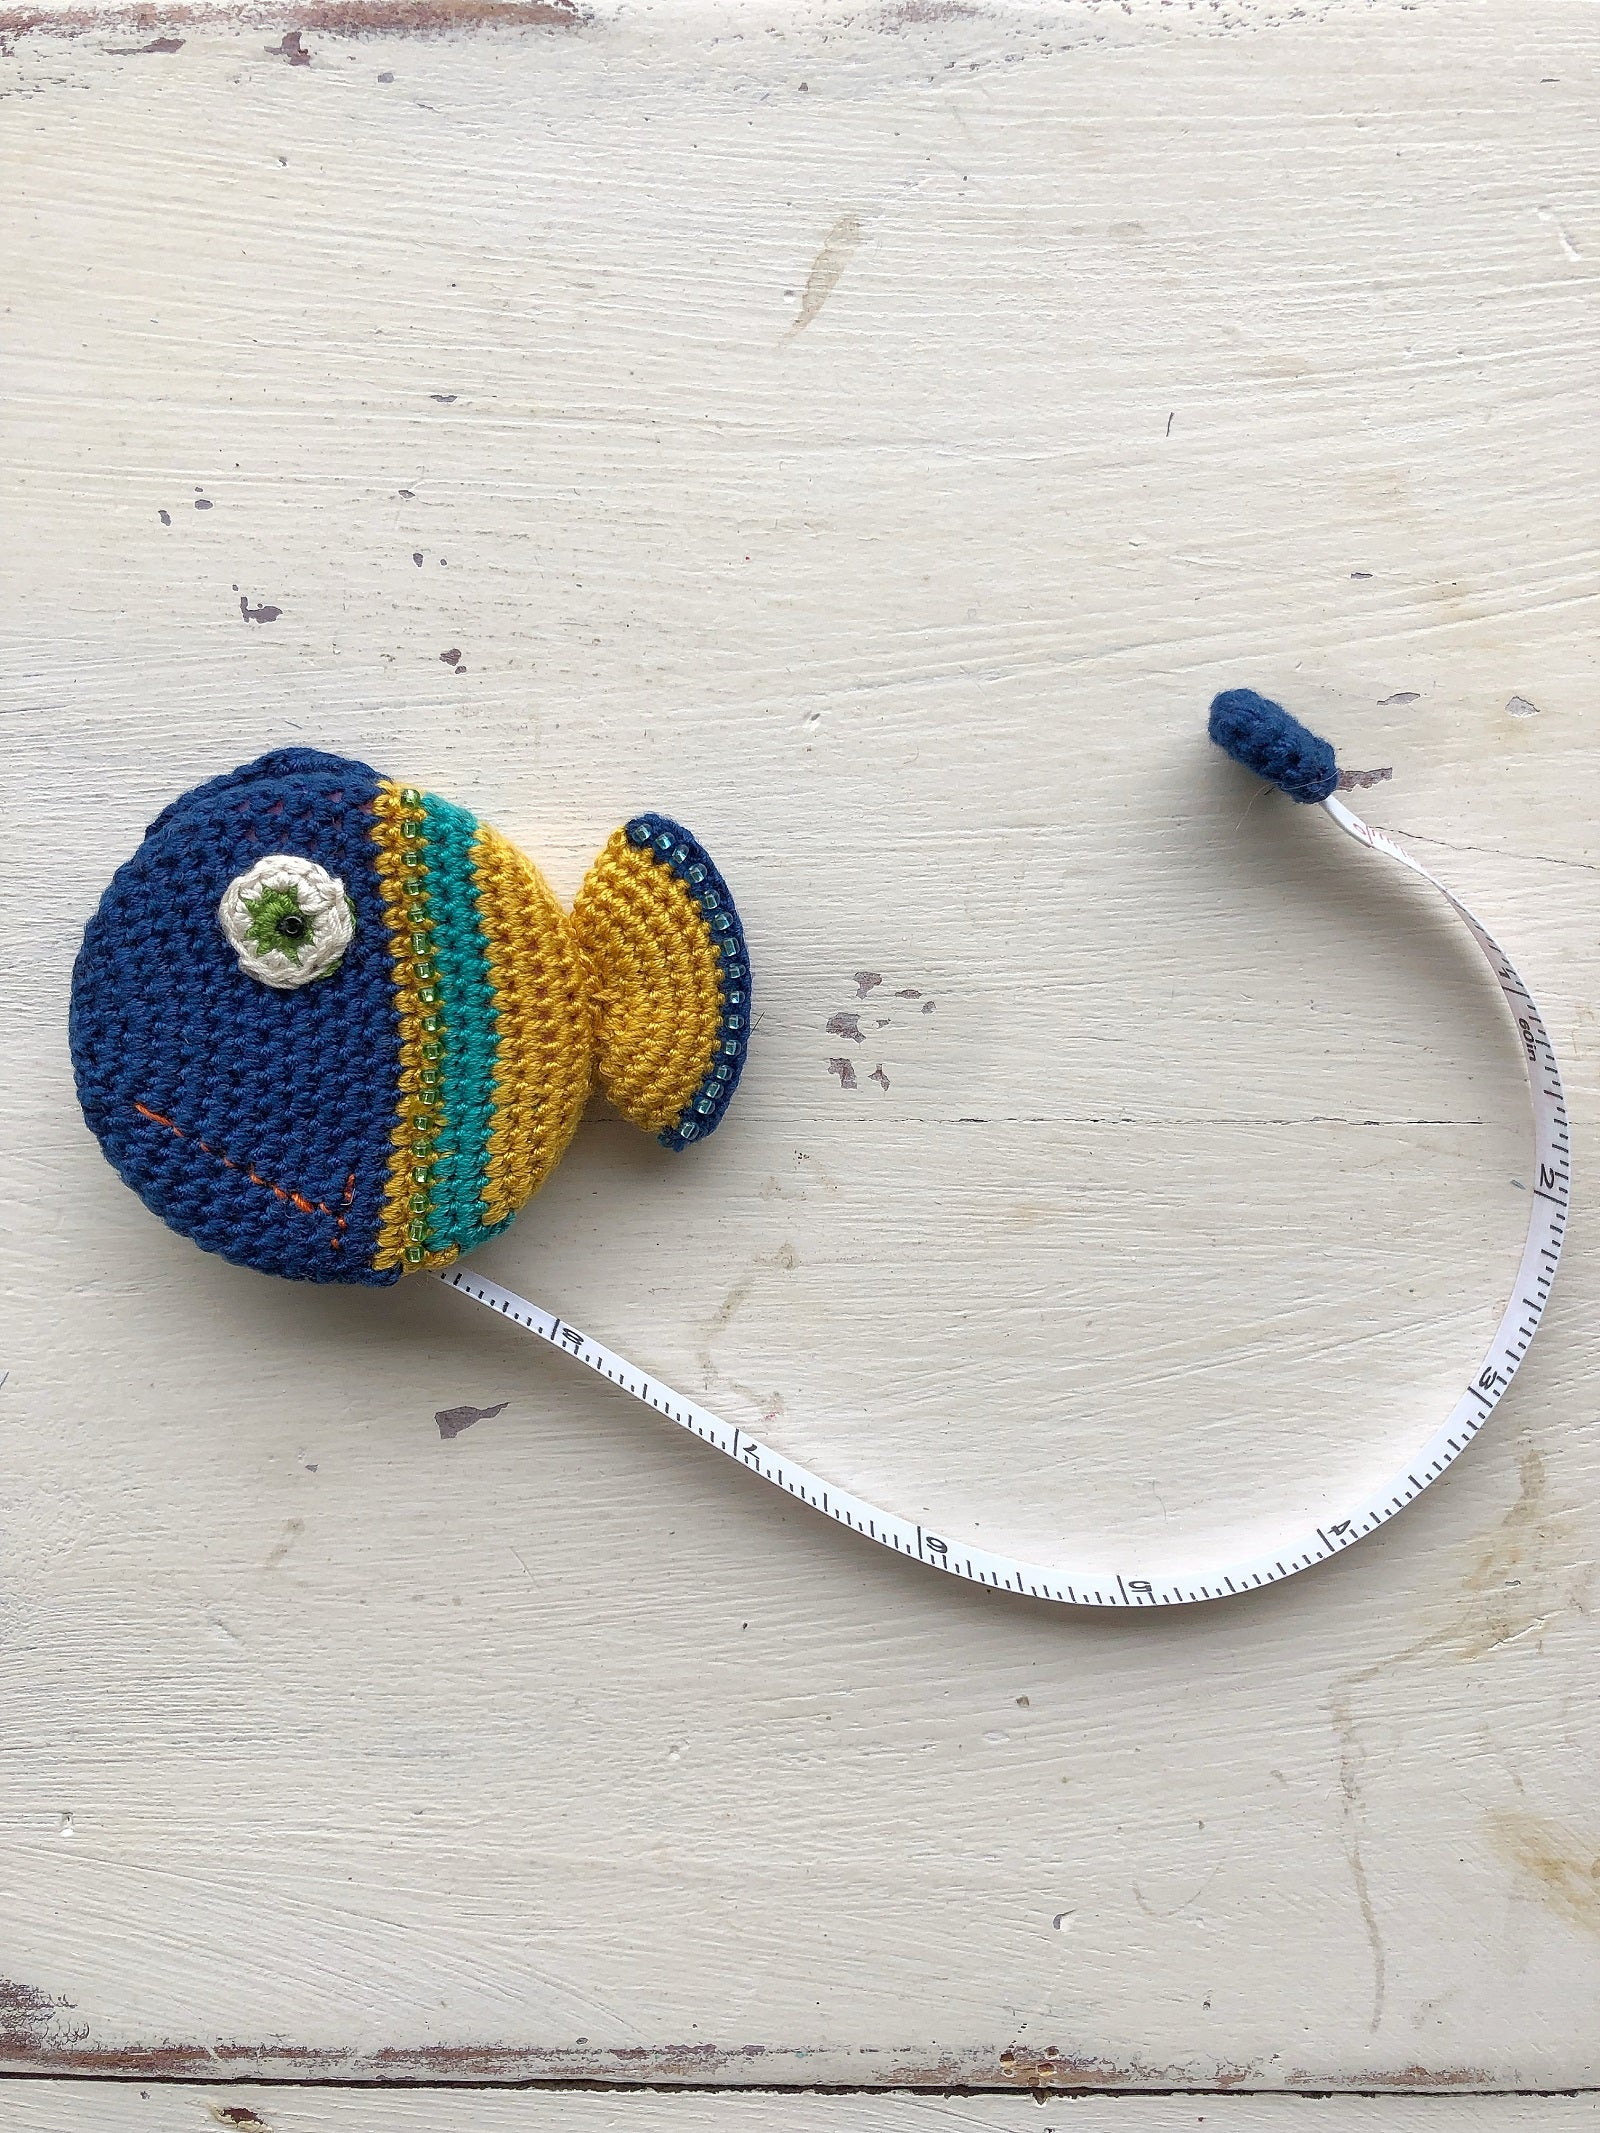 Paradise Crocheted Tape Measure